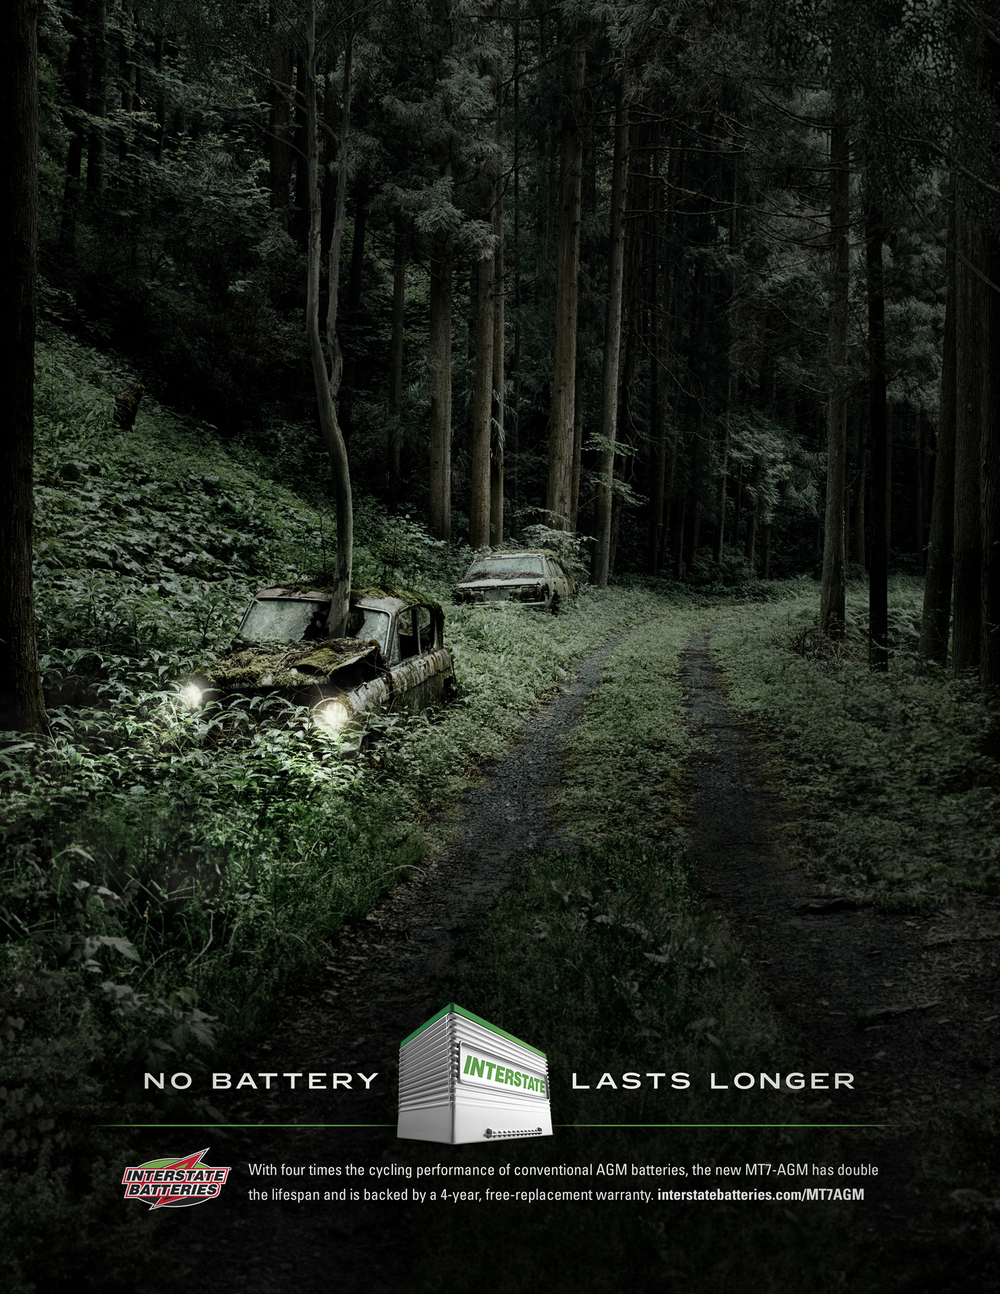 ryan-smith-creative-director-interstate-batteries-forest